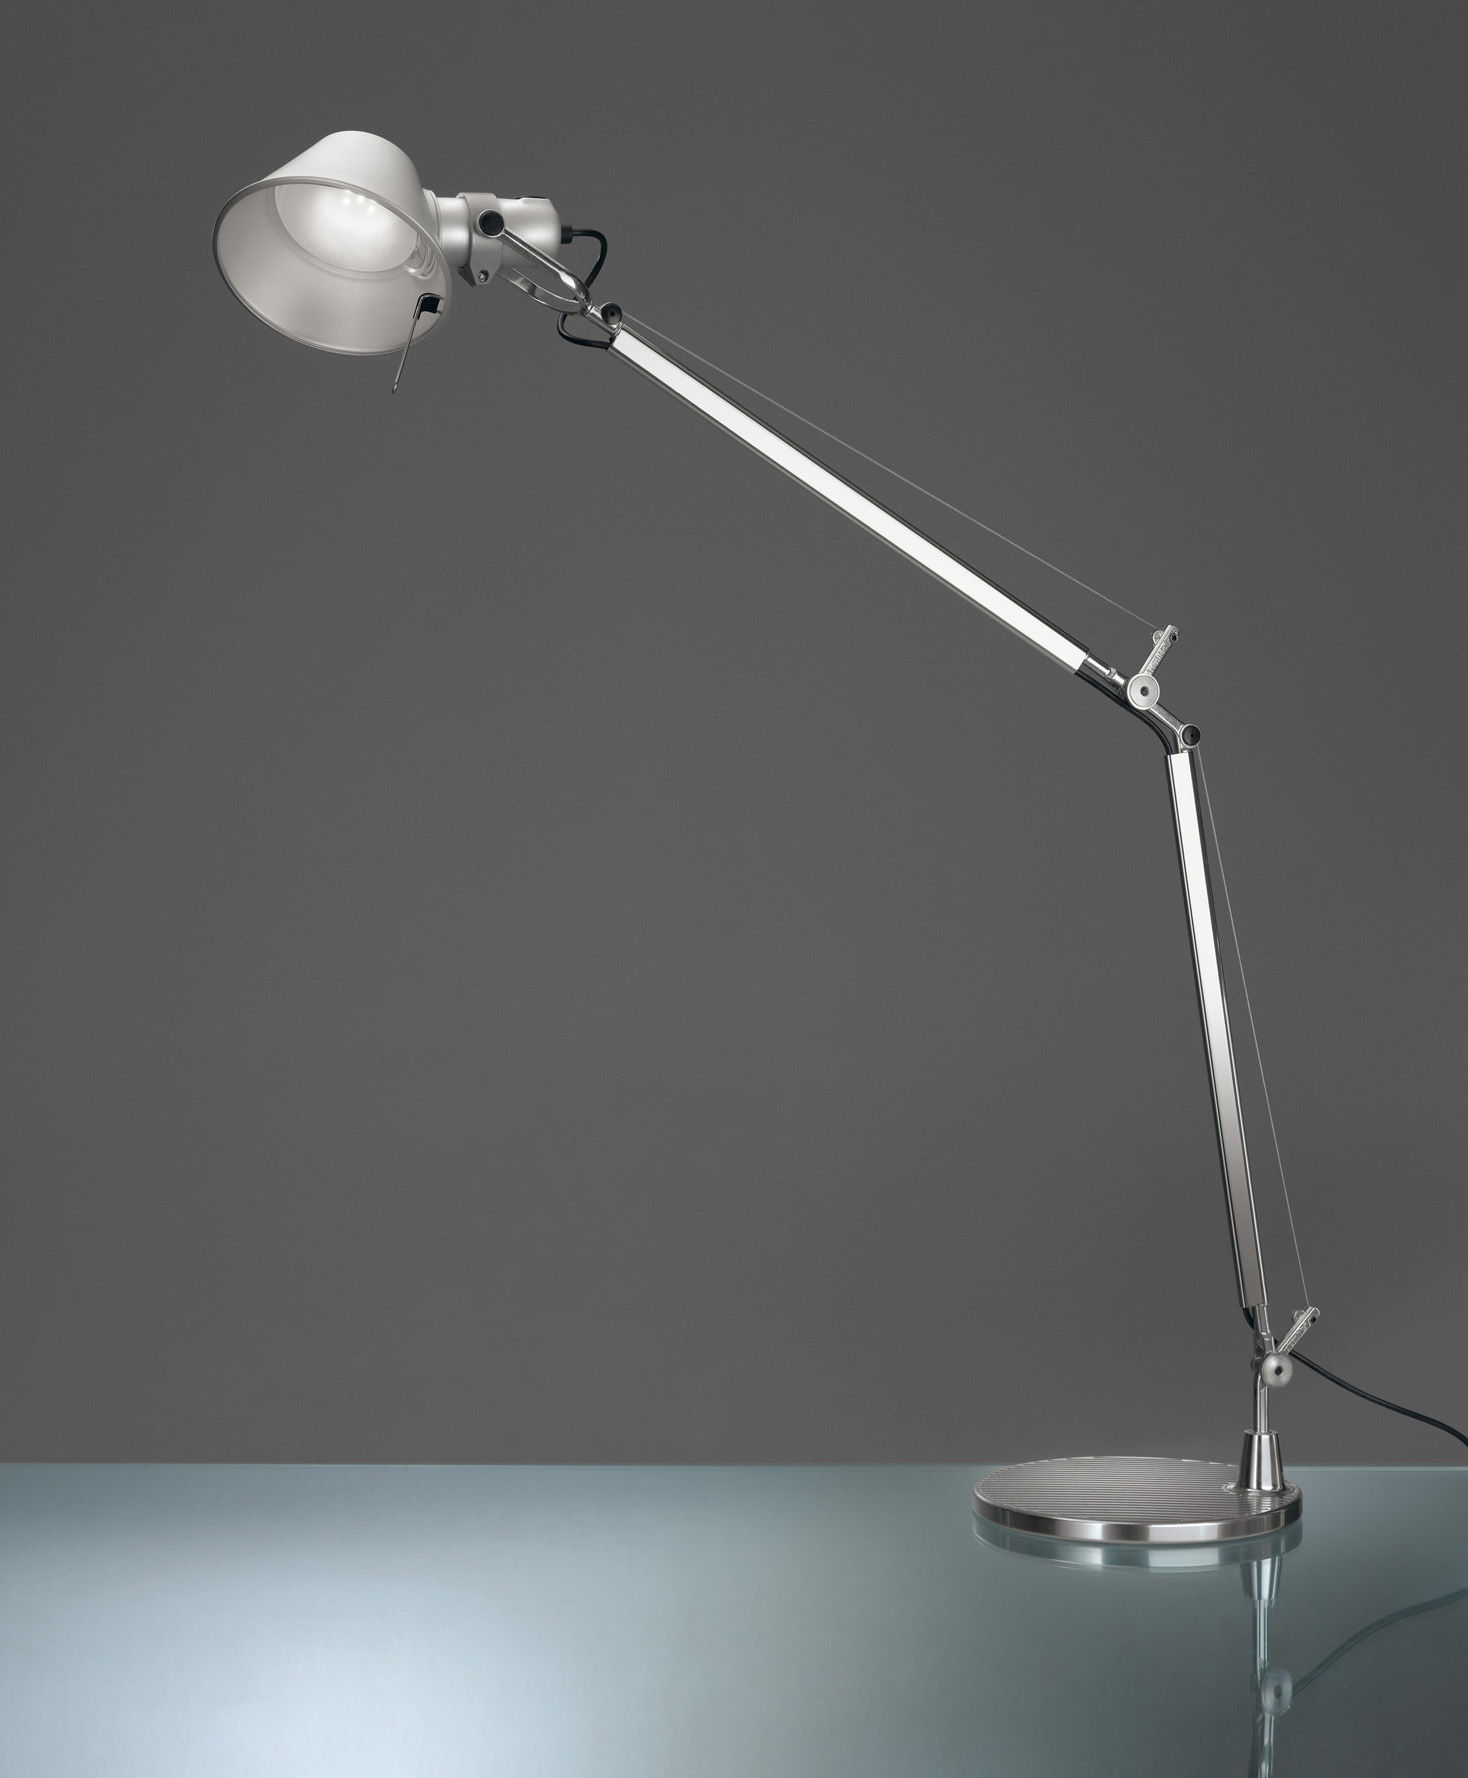 Lighting - Floor lamps - Tolomeo LED Small reading lamp - LED - H 167 cm by Artemide - LED - Aluminium - Aluminium